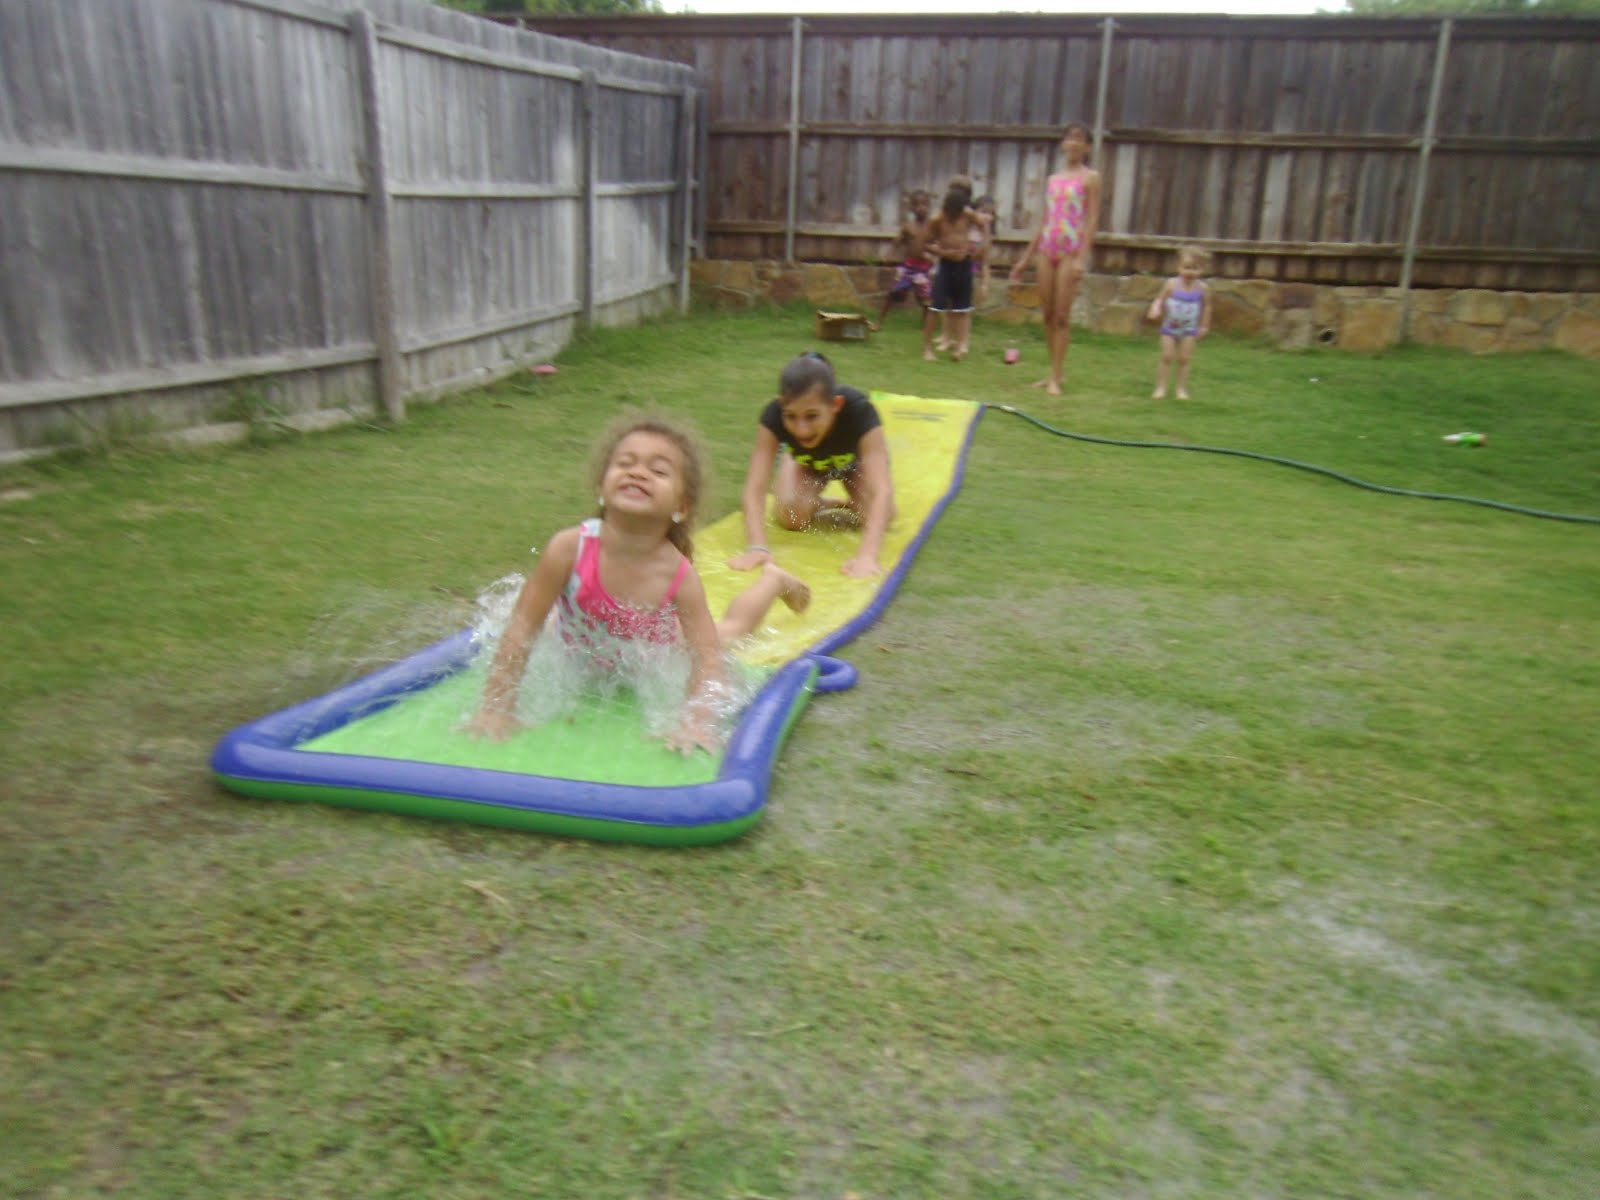 The Big Texas Hill Family: Daycare kids - sprinkler day